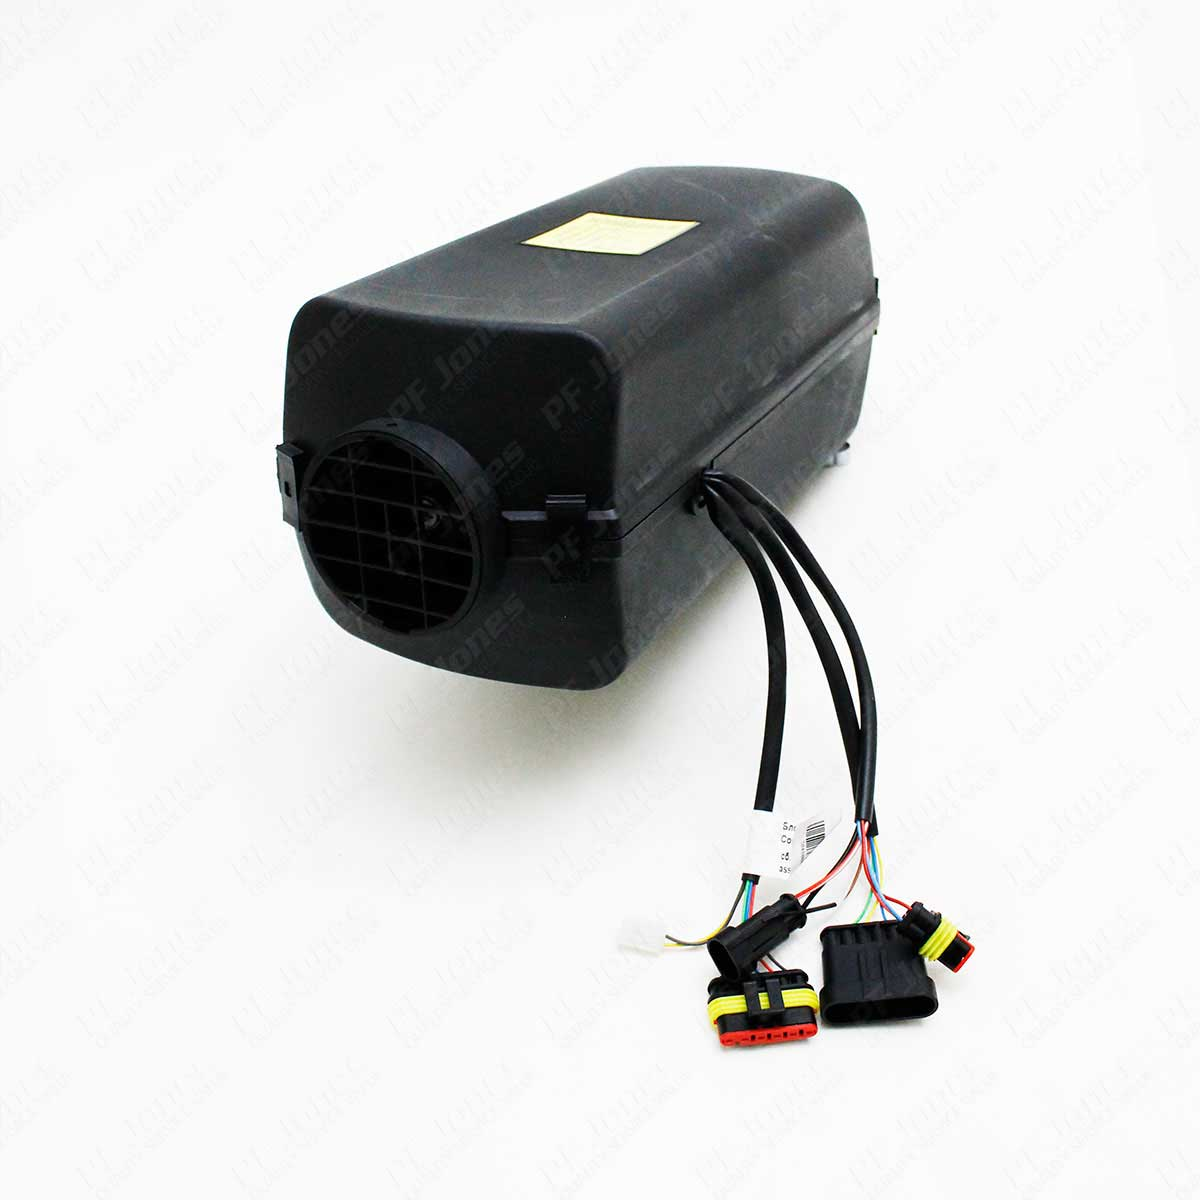 Planar 44D-24-GP-ТМ Air Heater 4kW/24V - Universal Kit